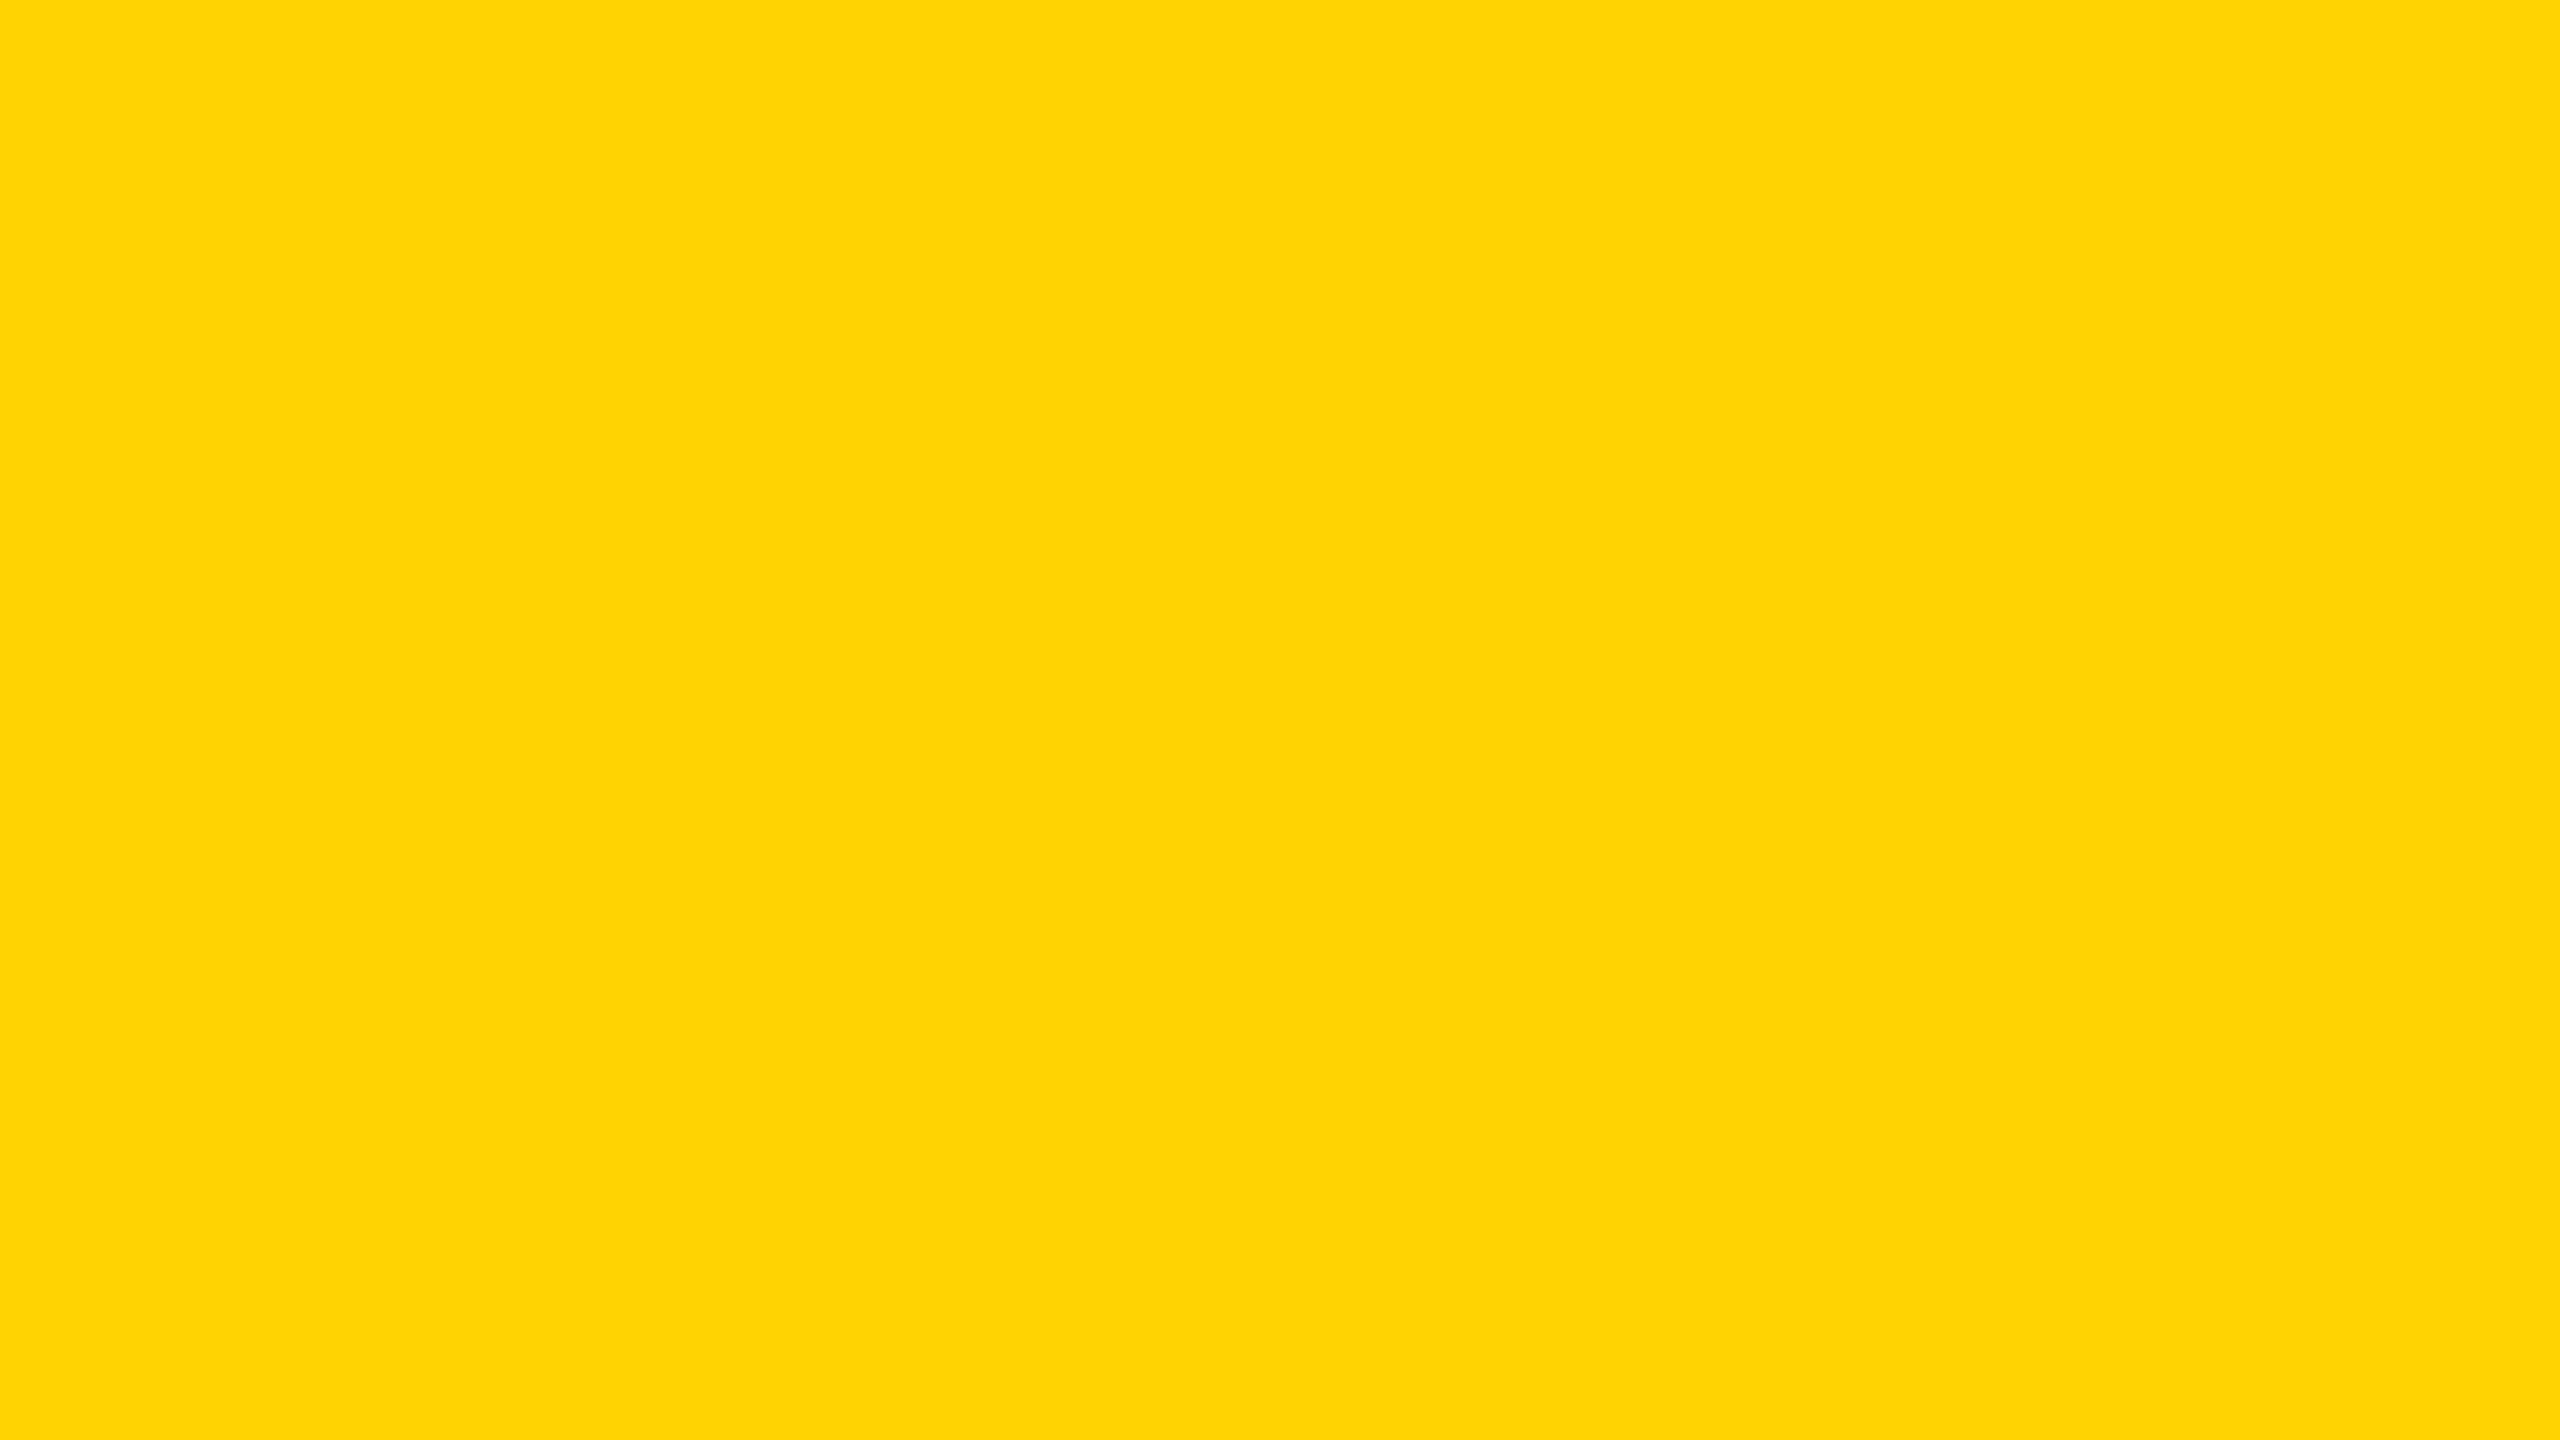 2560x1440 Yellow NCS Solid Color Background